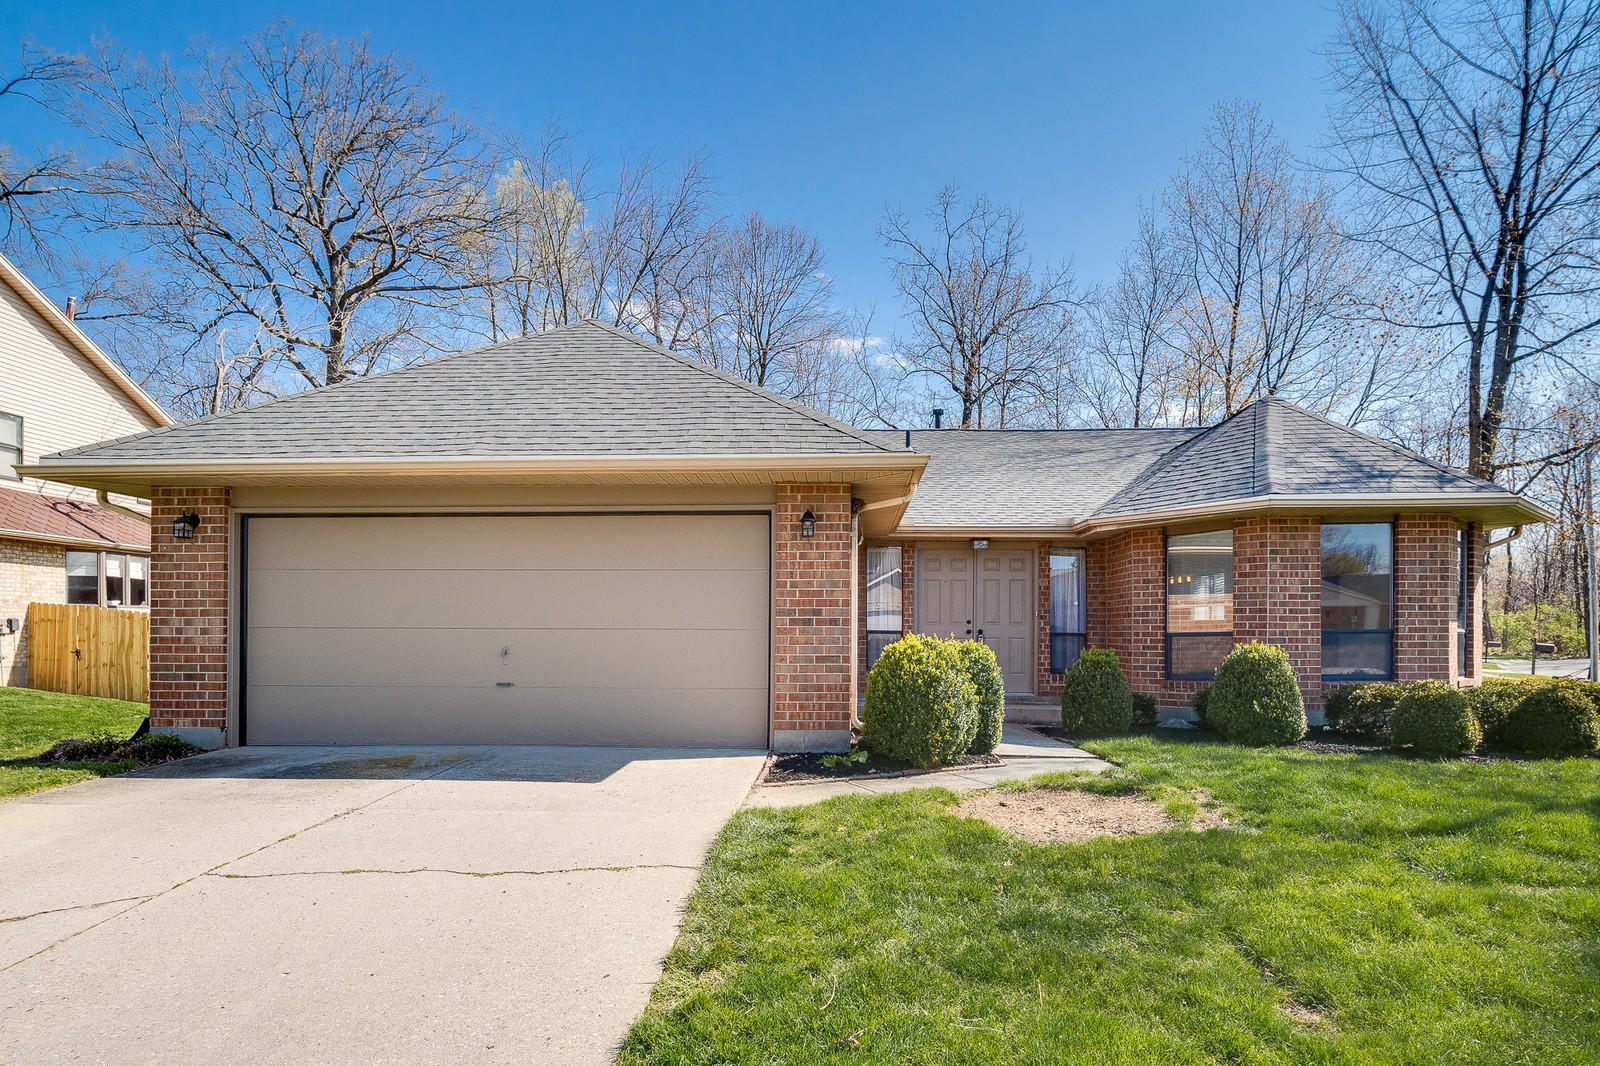 8953 Emeraldgate Drive, Huber Heights, Ohio